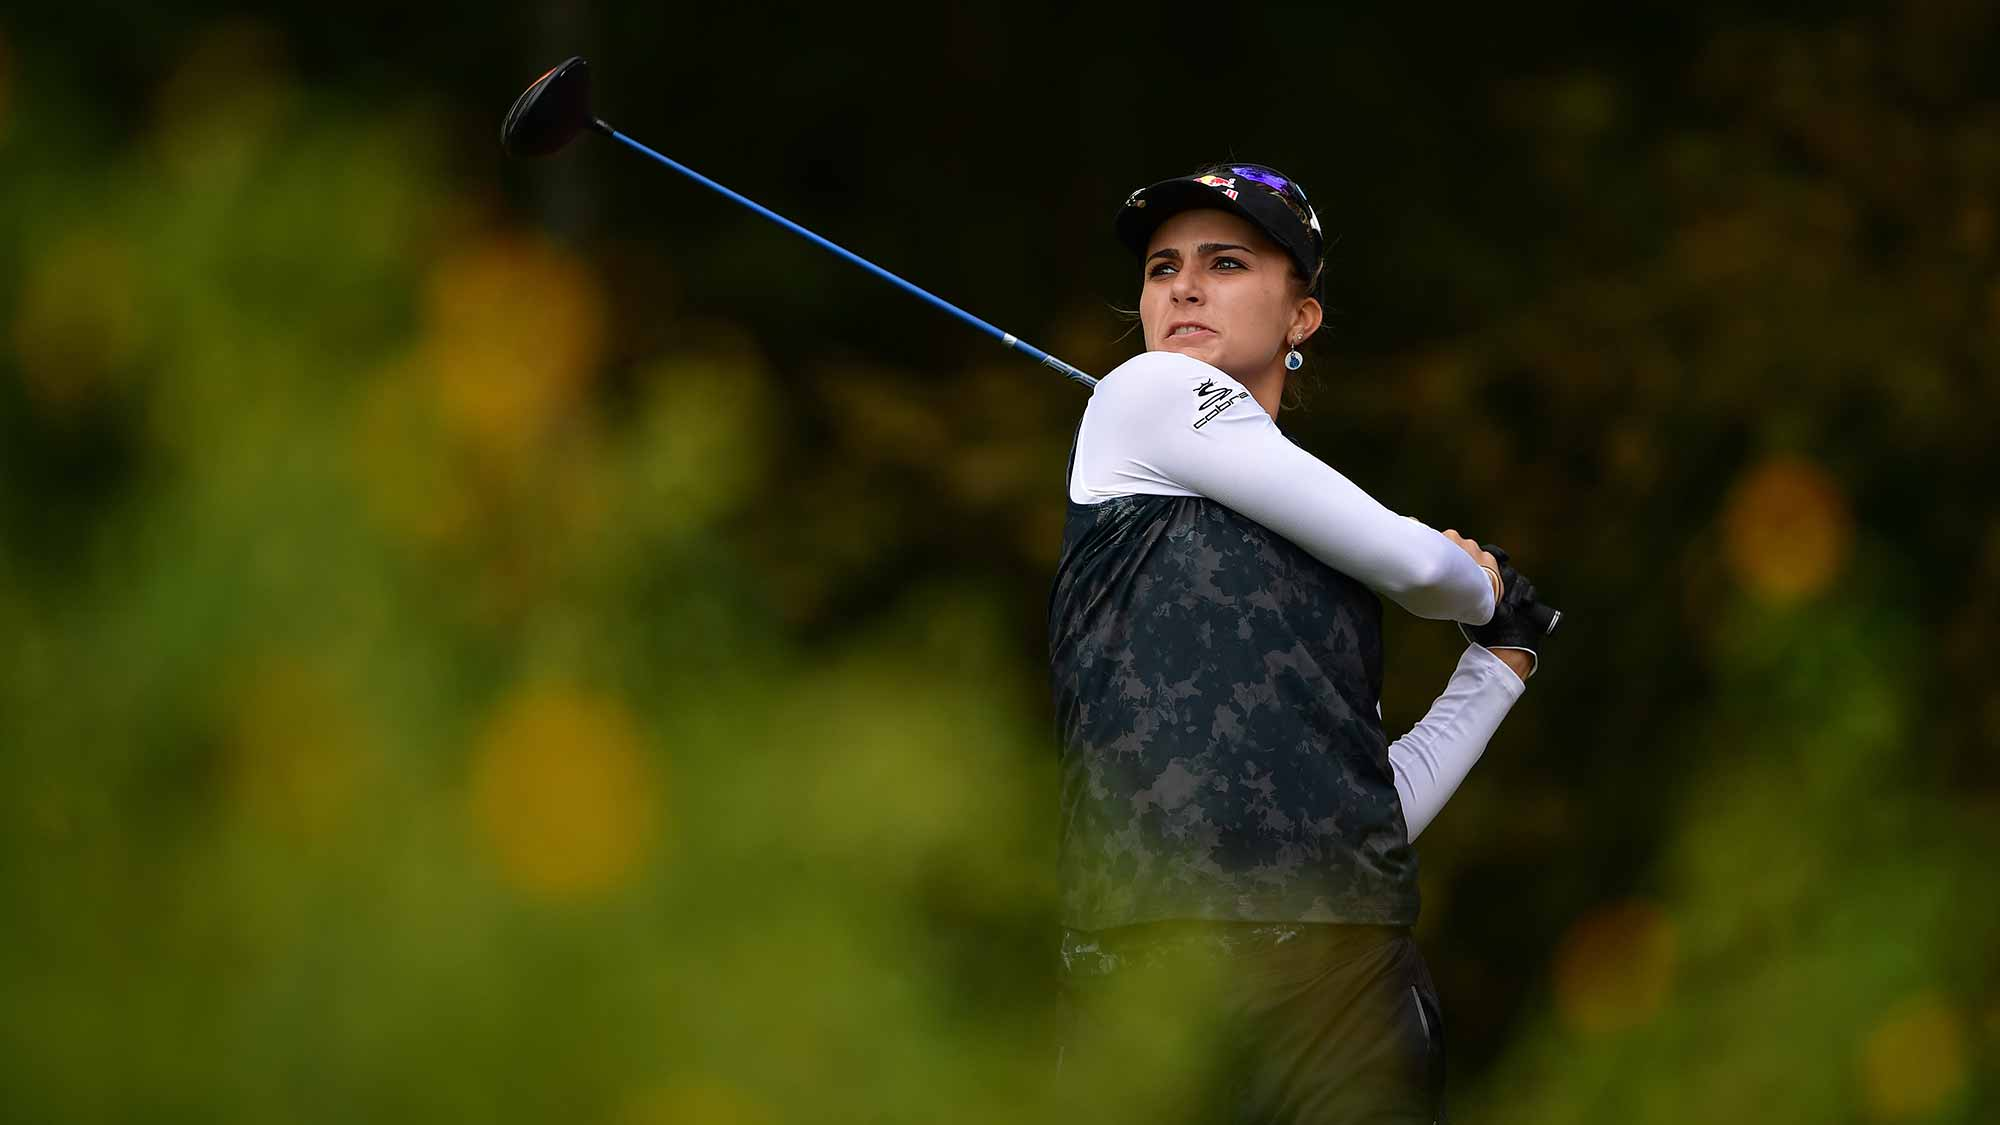 Lexi Thompson during round one of the Evian Championship in Evian-les-Bains, France.